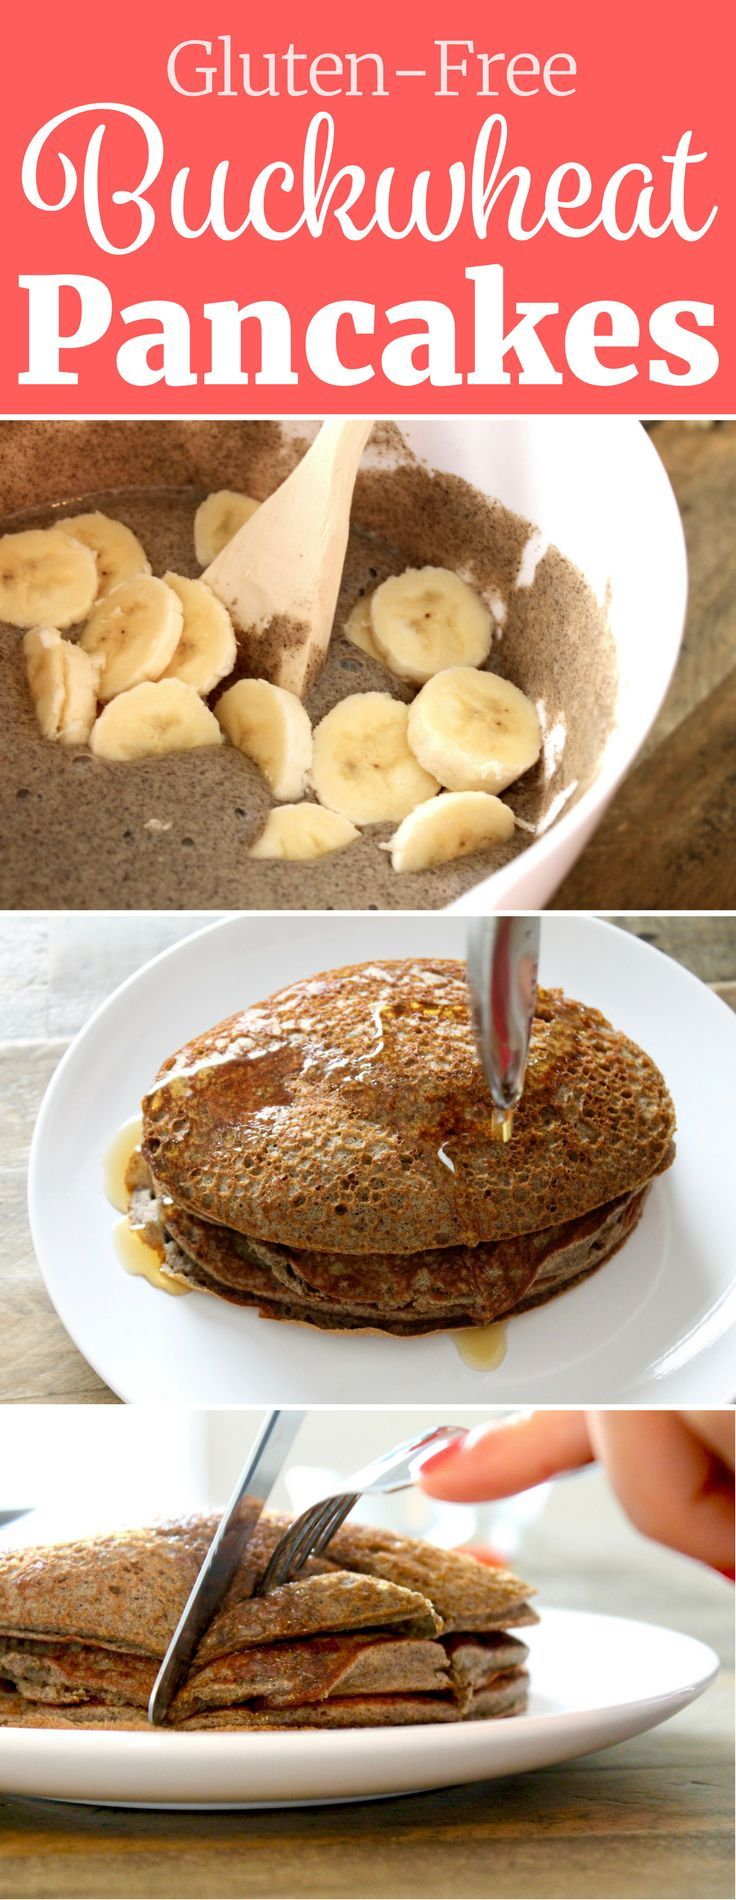 You would NEVER know that these Buckwheat Pancakes are gluten-free! They're fluffy and SO delicious! // www.littlechefbigappetite.com // Buckwheat Banana Pancakes, Buckwheat Flour, Healthy Pancakes, Gluten-Free Pancakes, Banana Pancakes